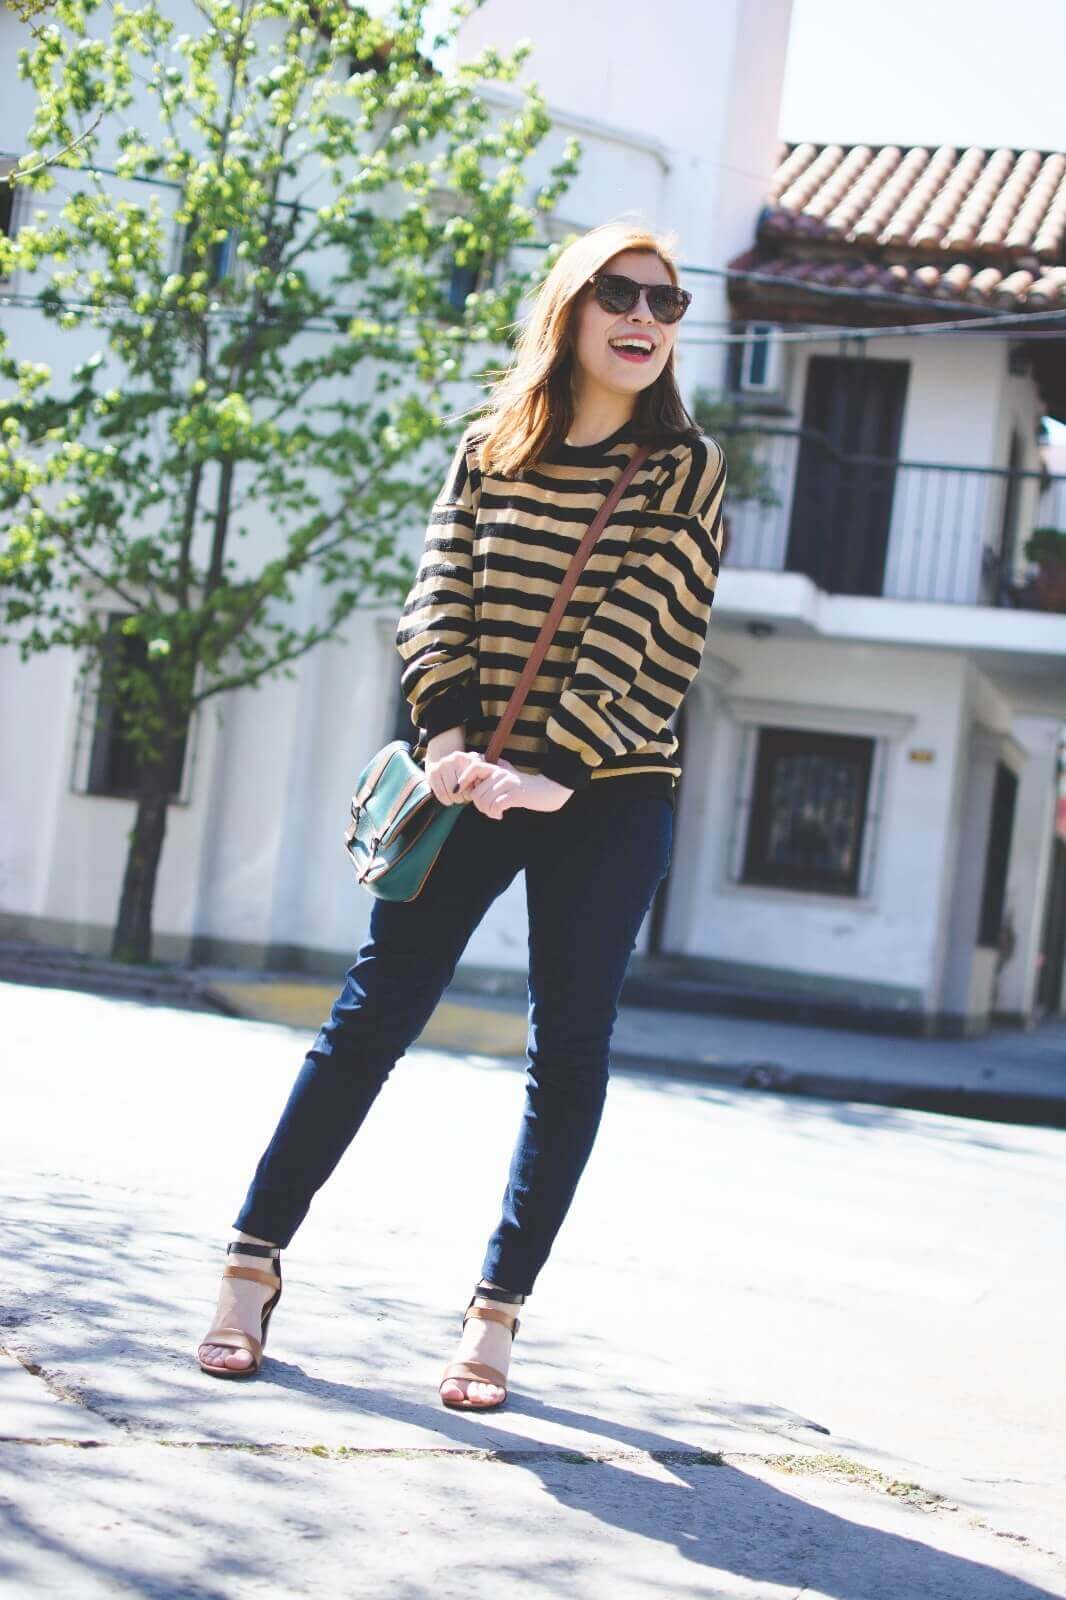 sammydress-block-heel-sandals-leopard-frame-light-brown-sammydress-sunglasses-deborah-ferrero-style-by-deb-streetstyle-salta-striped-sweater-fall2016-trends12